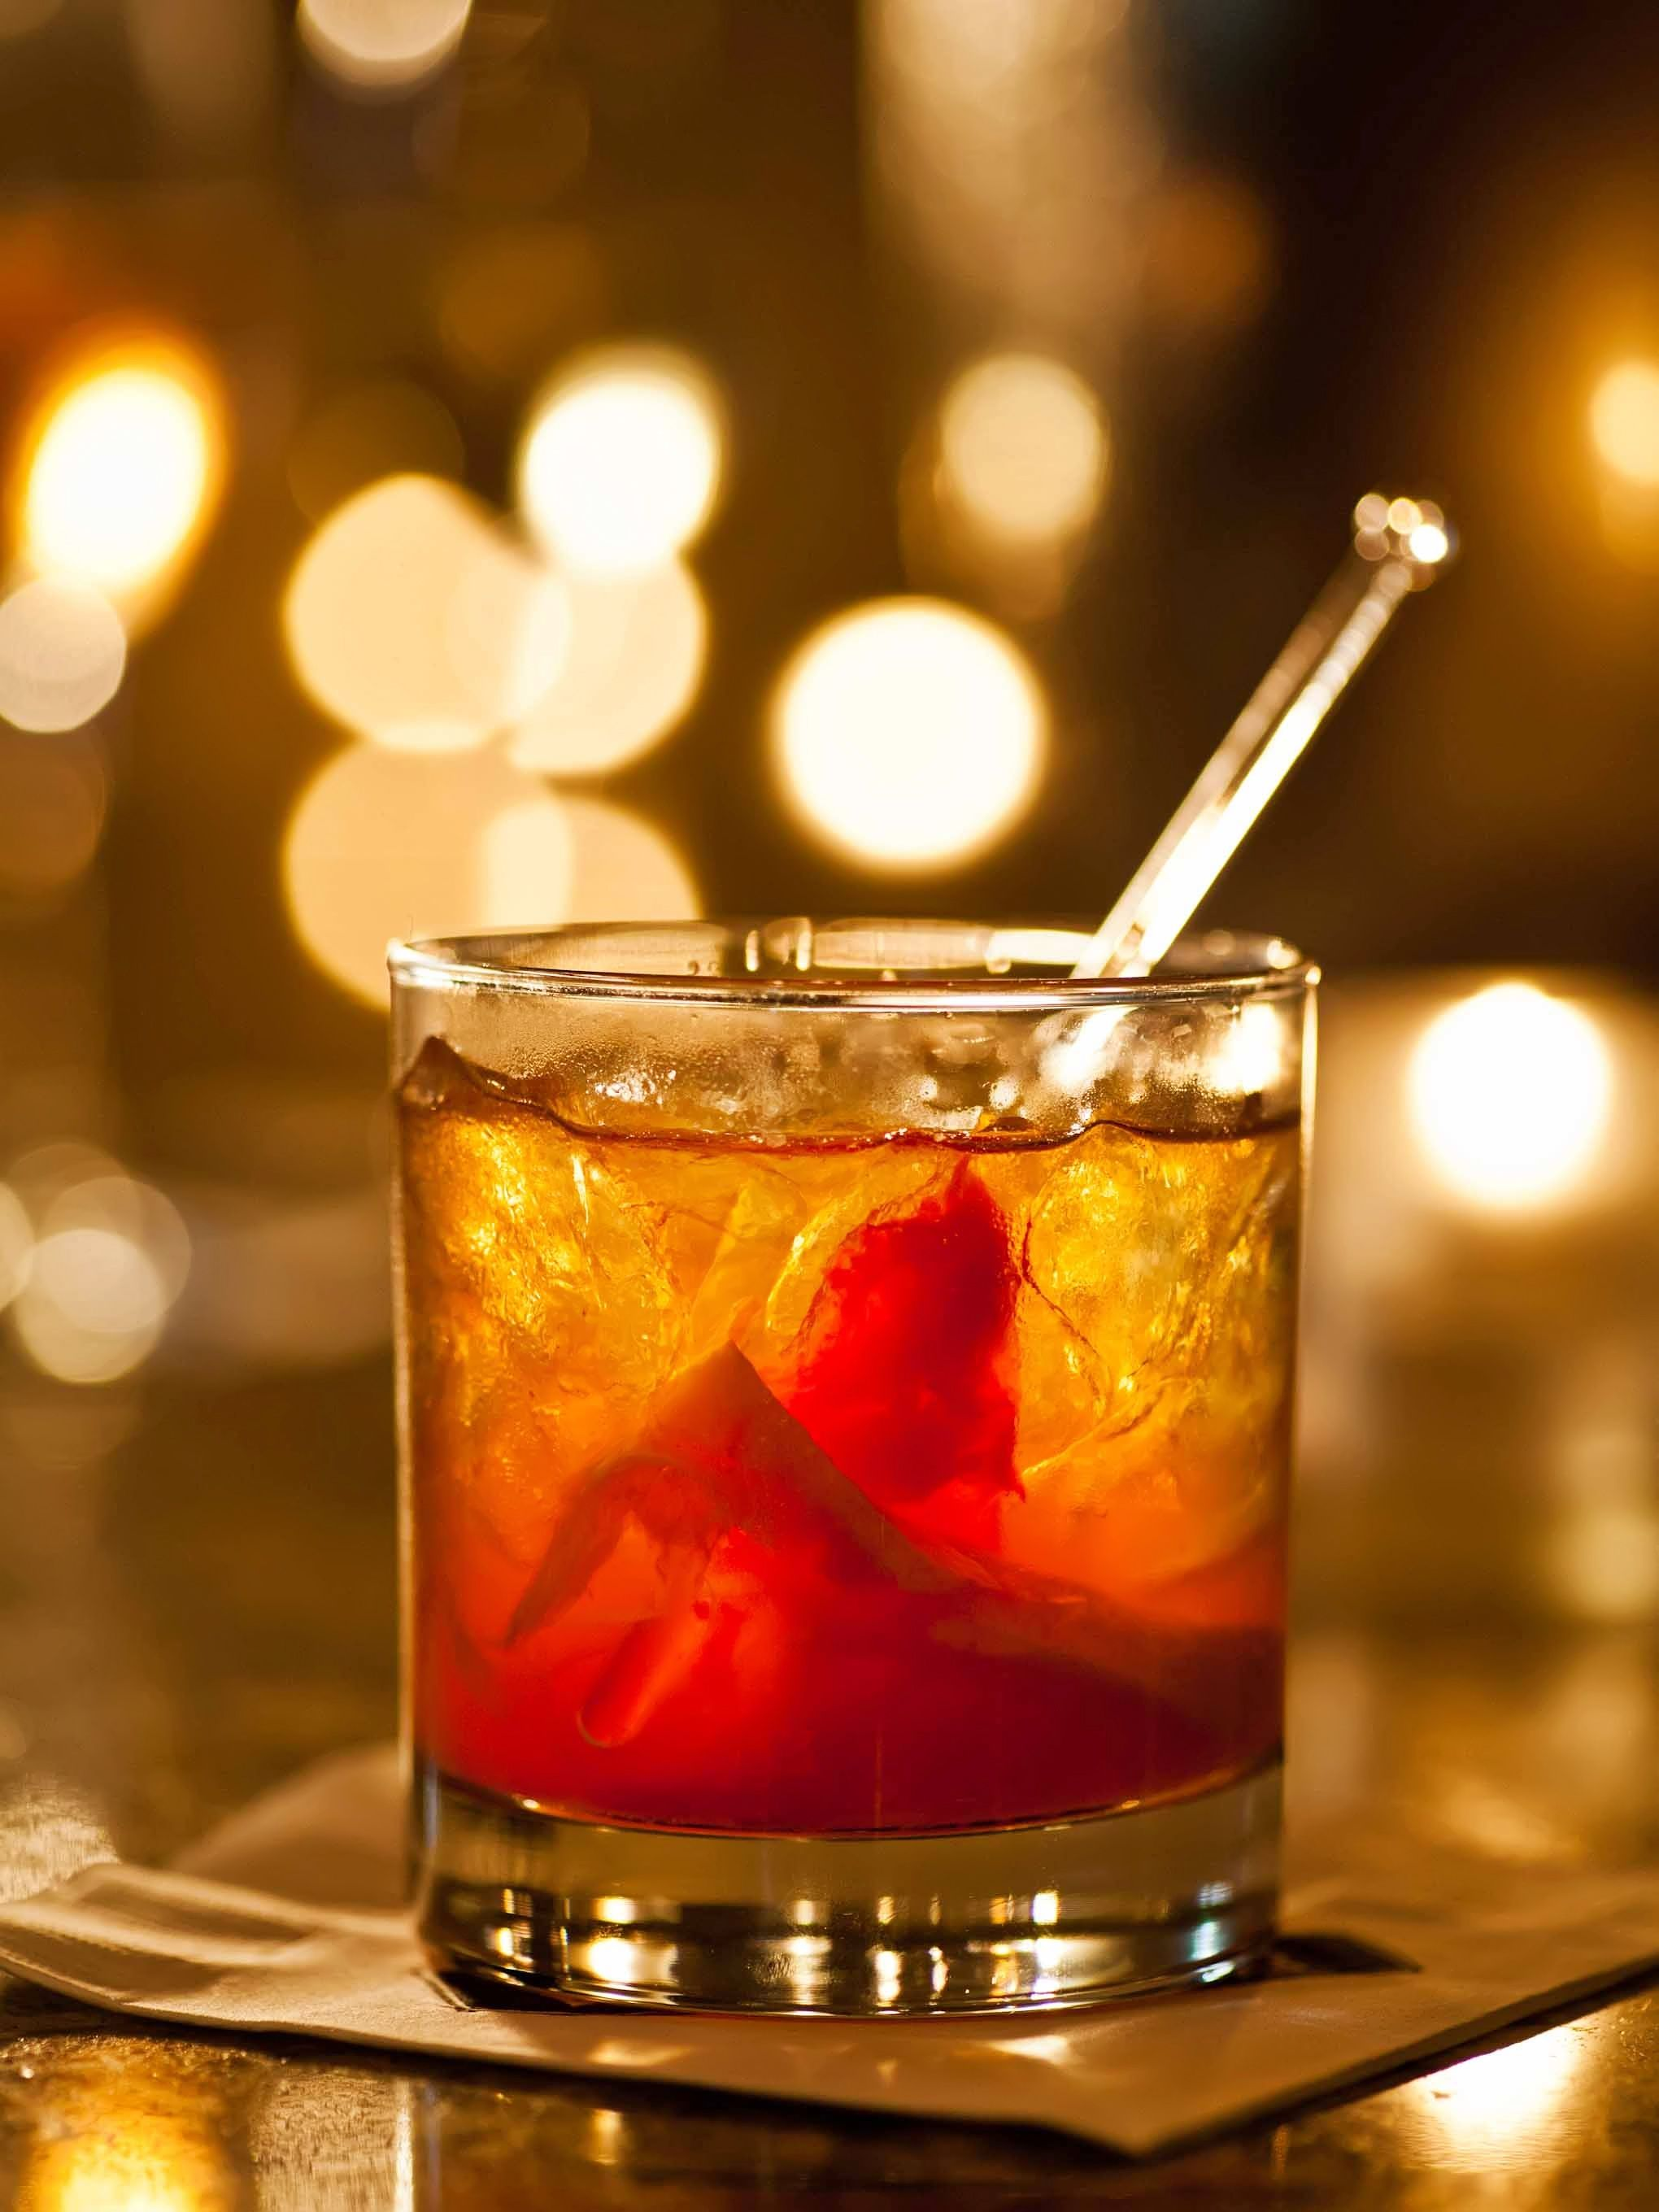 15 Old Fashioned Drink Recipes - New Old Fashioned Variation